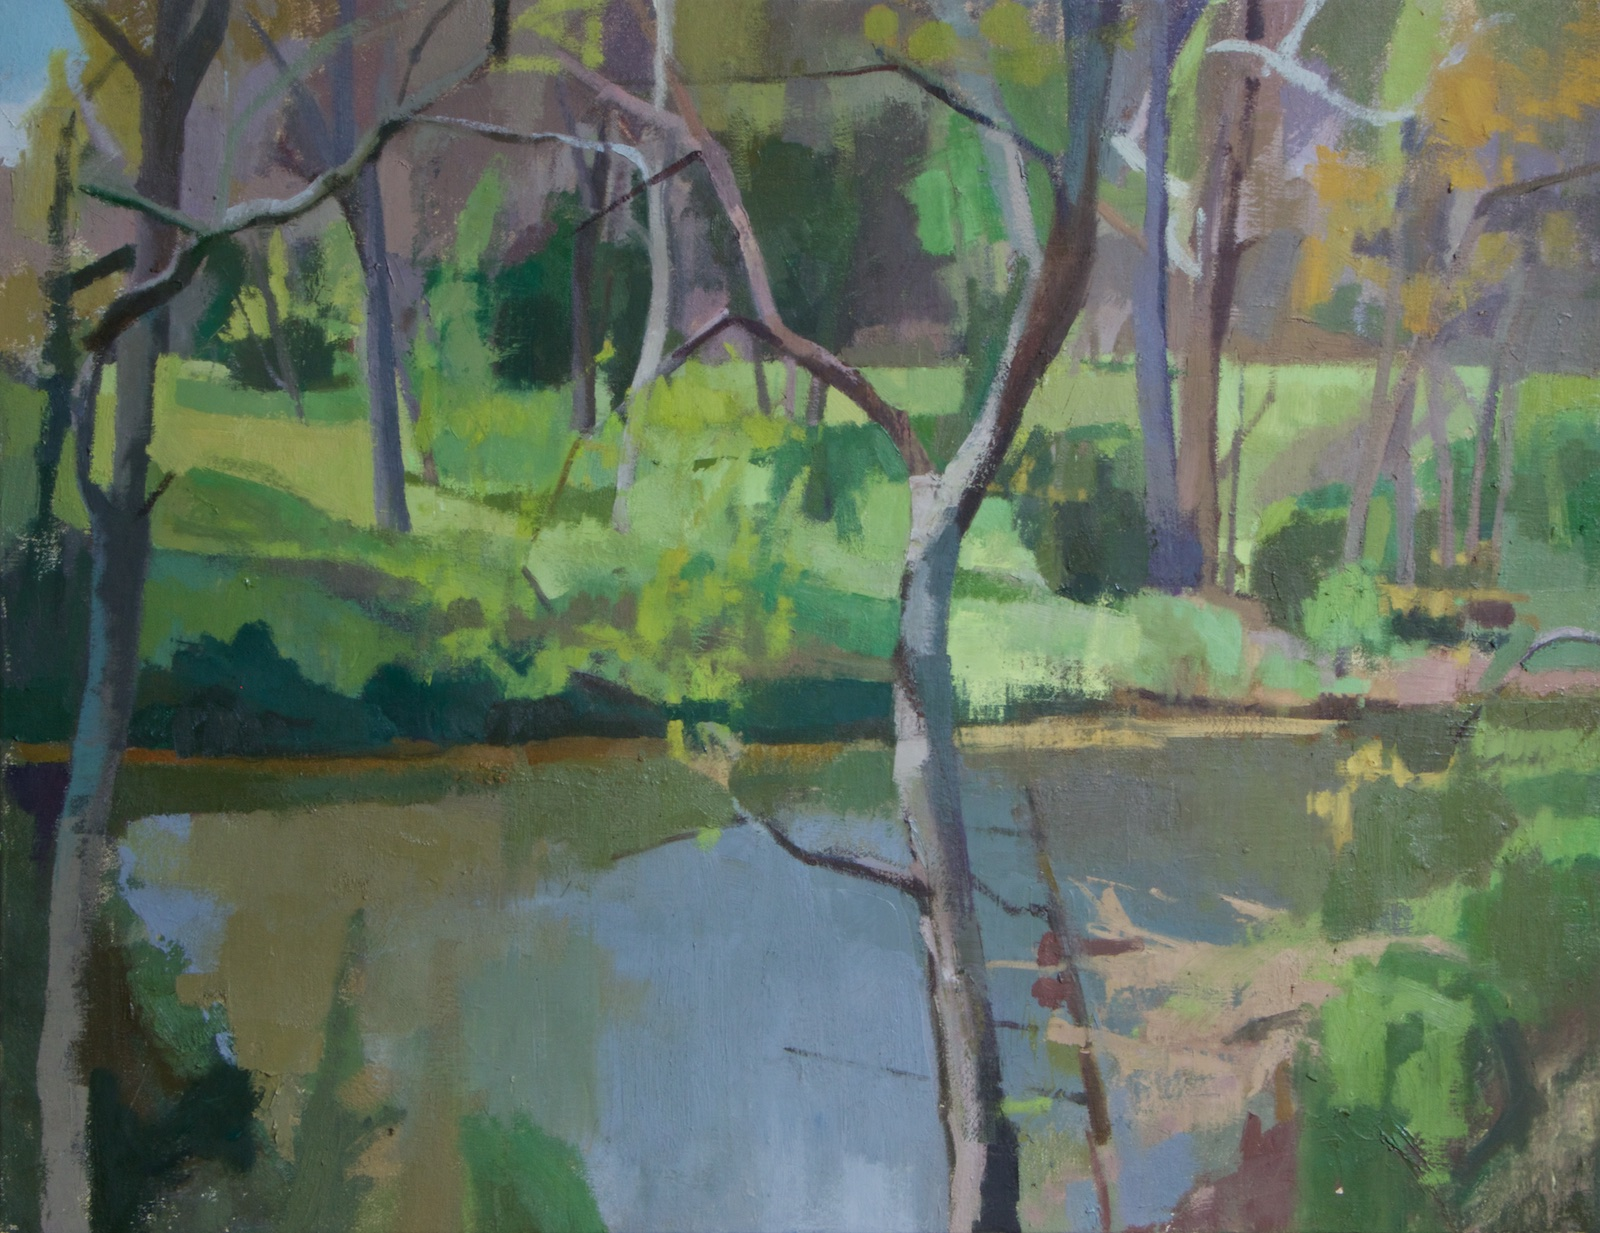 Lodge Creek_oil on canvas_23.5x30.25_20.